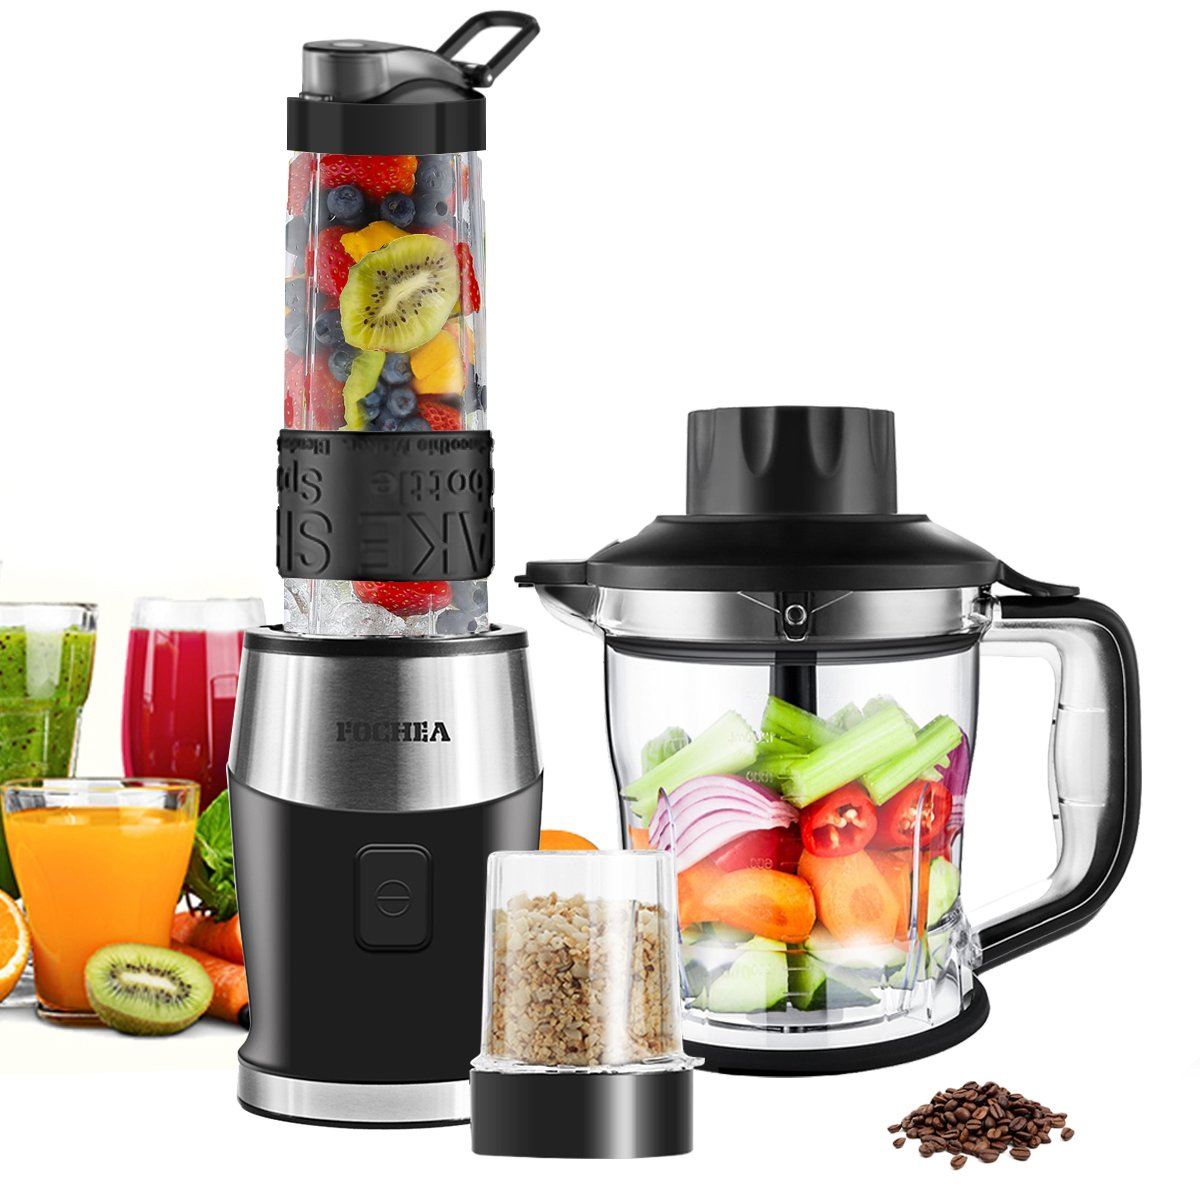 Smoothie Blender, Fochea 3 In 1 Food Processor Multi-Function Kitchen System, 748476705912 | eBay